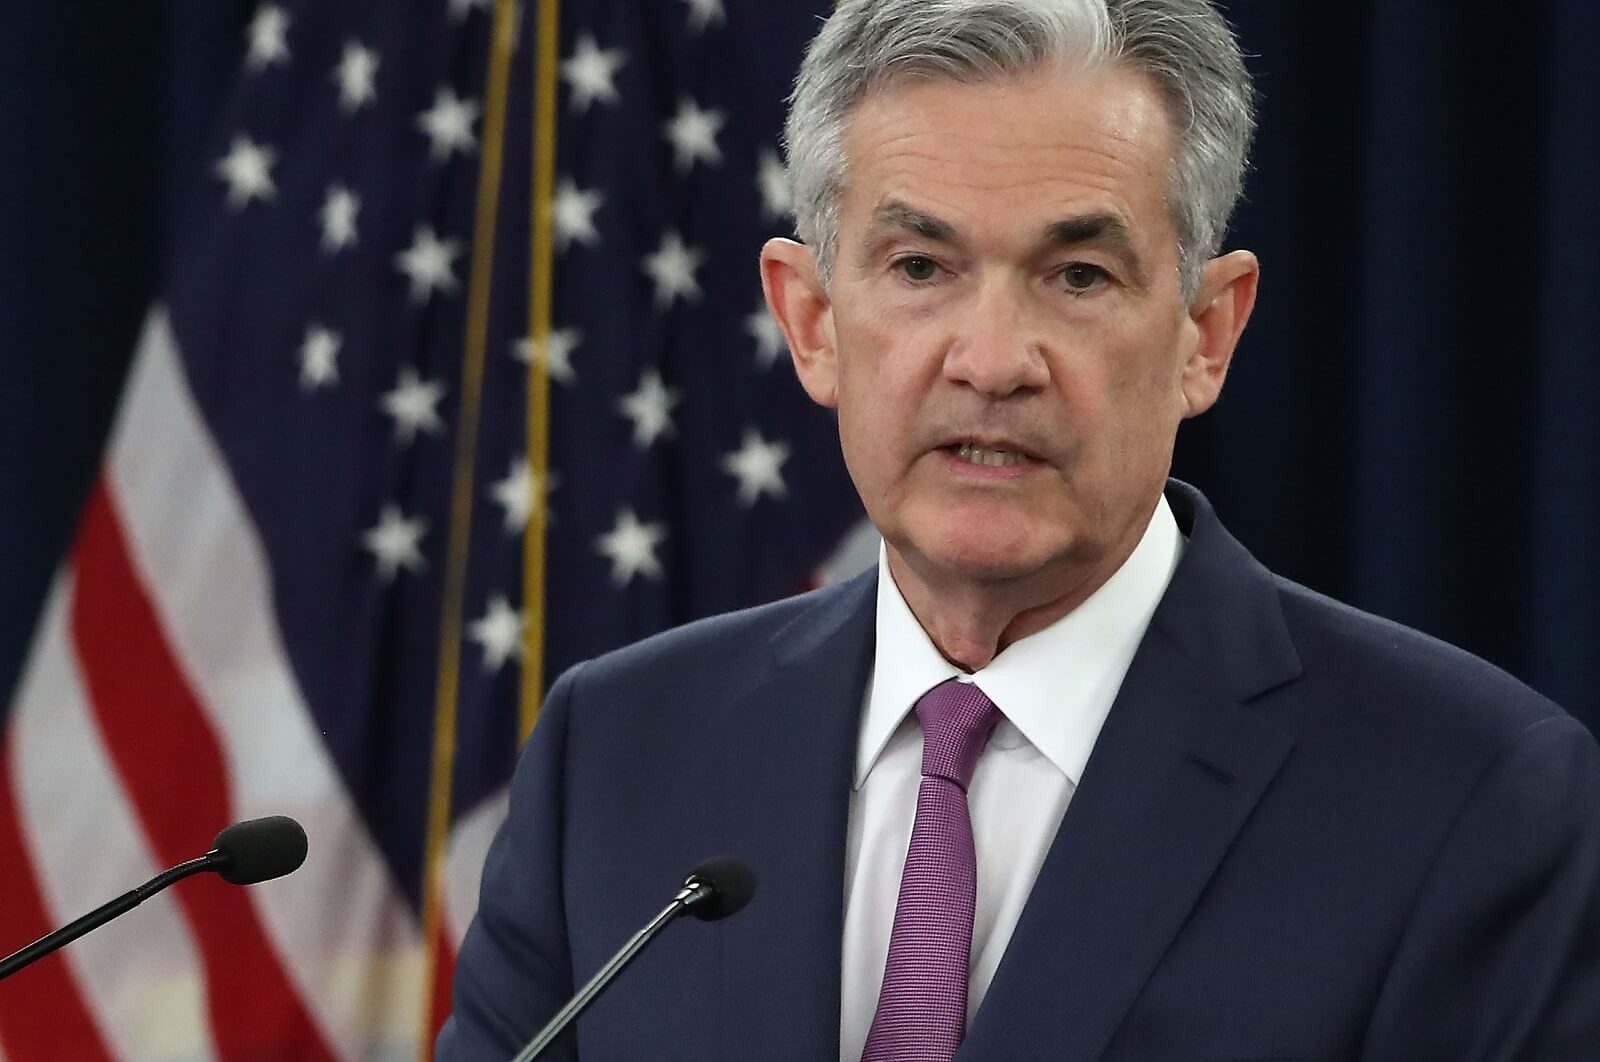 Federal Reserve Chairman Jerome Powell speaks at a news conference, 13 June 2018 (Photo: Mark Wilson/Getty)